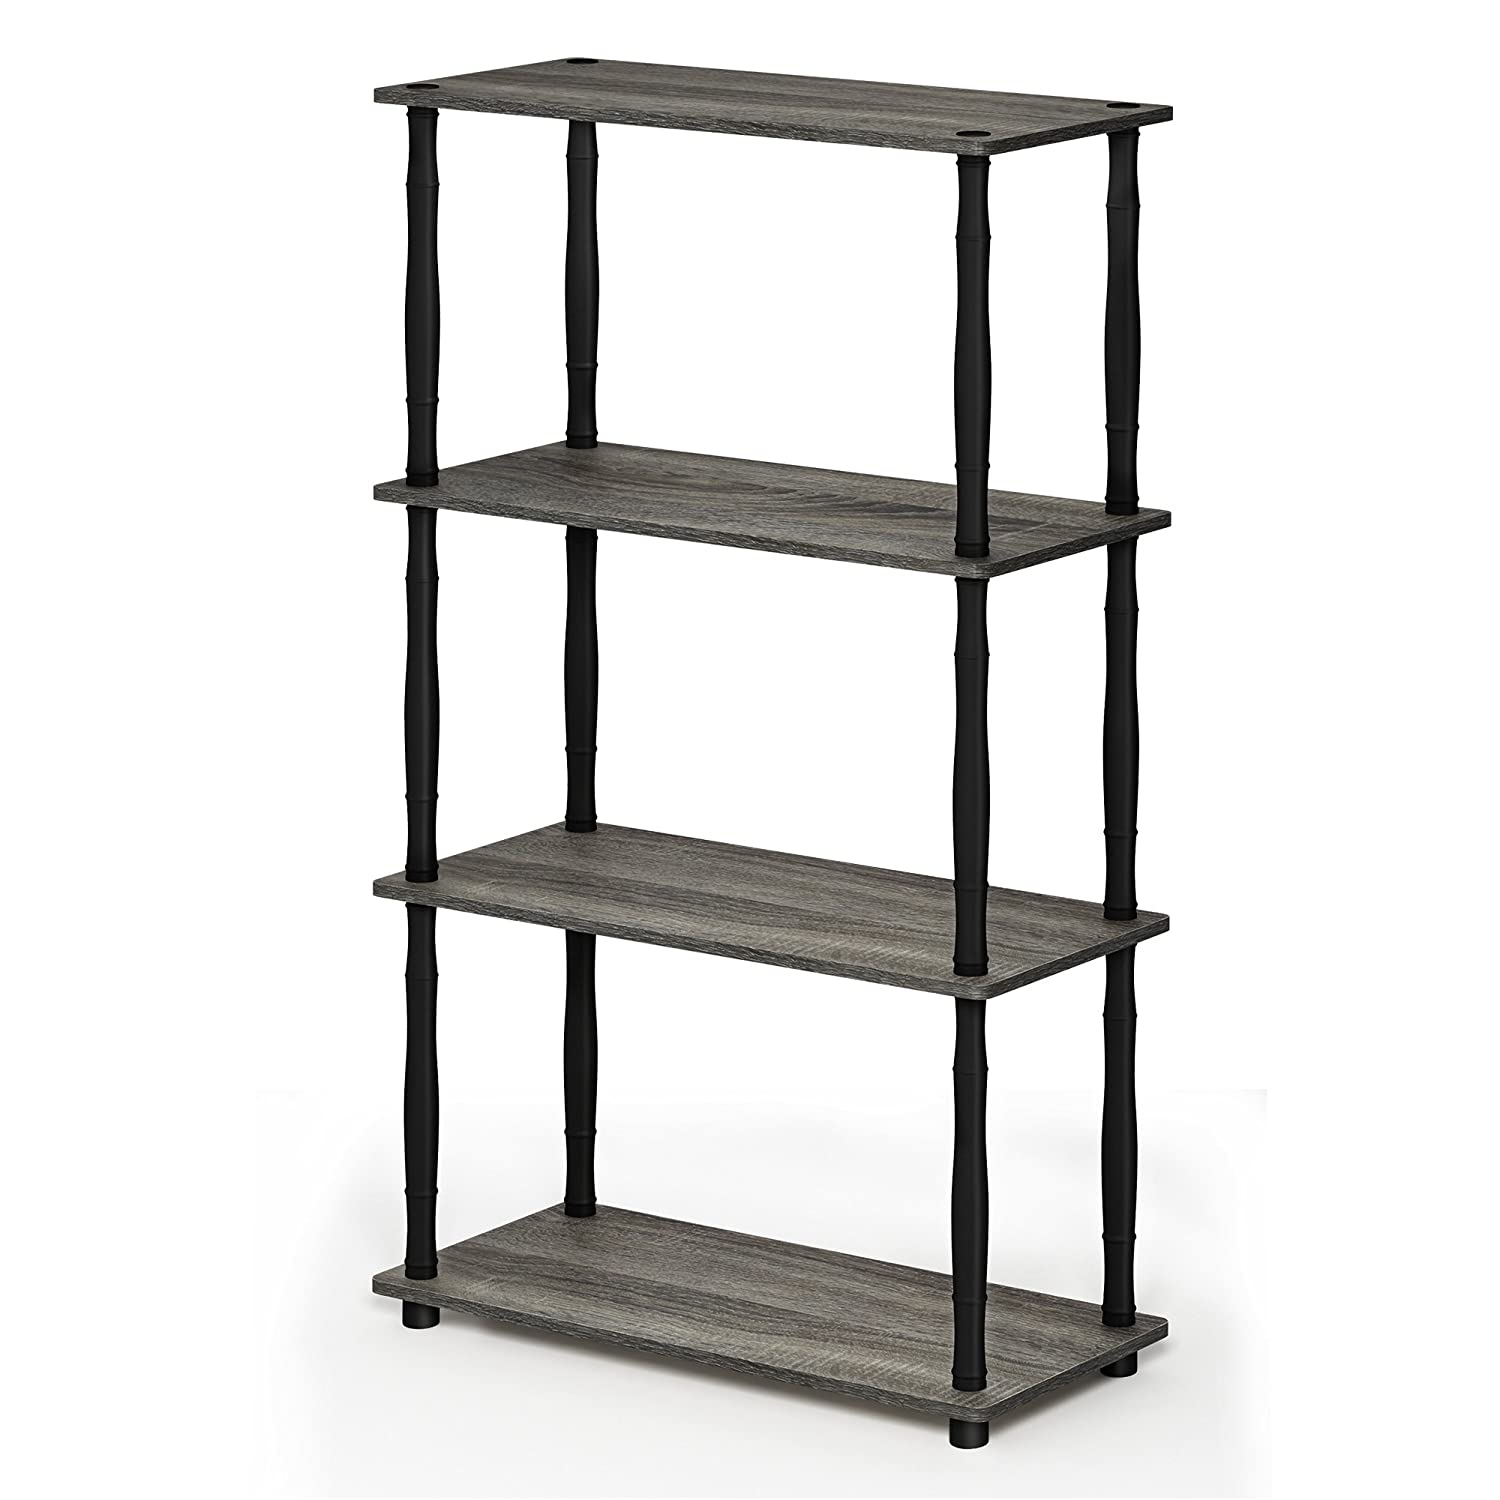 French Oak Grey Black 4-Tier Classic Tubes Furinno 17091BE WH Turn-N-Tube 5-Tier Compact Multipurpose Shelf, Single, Beech White